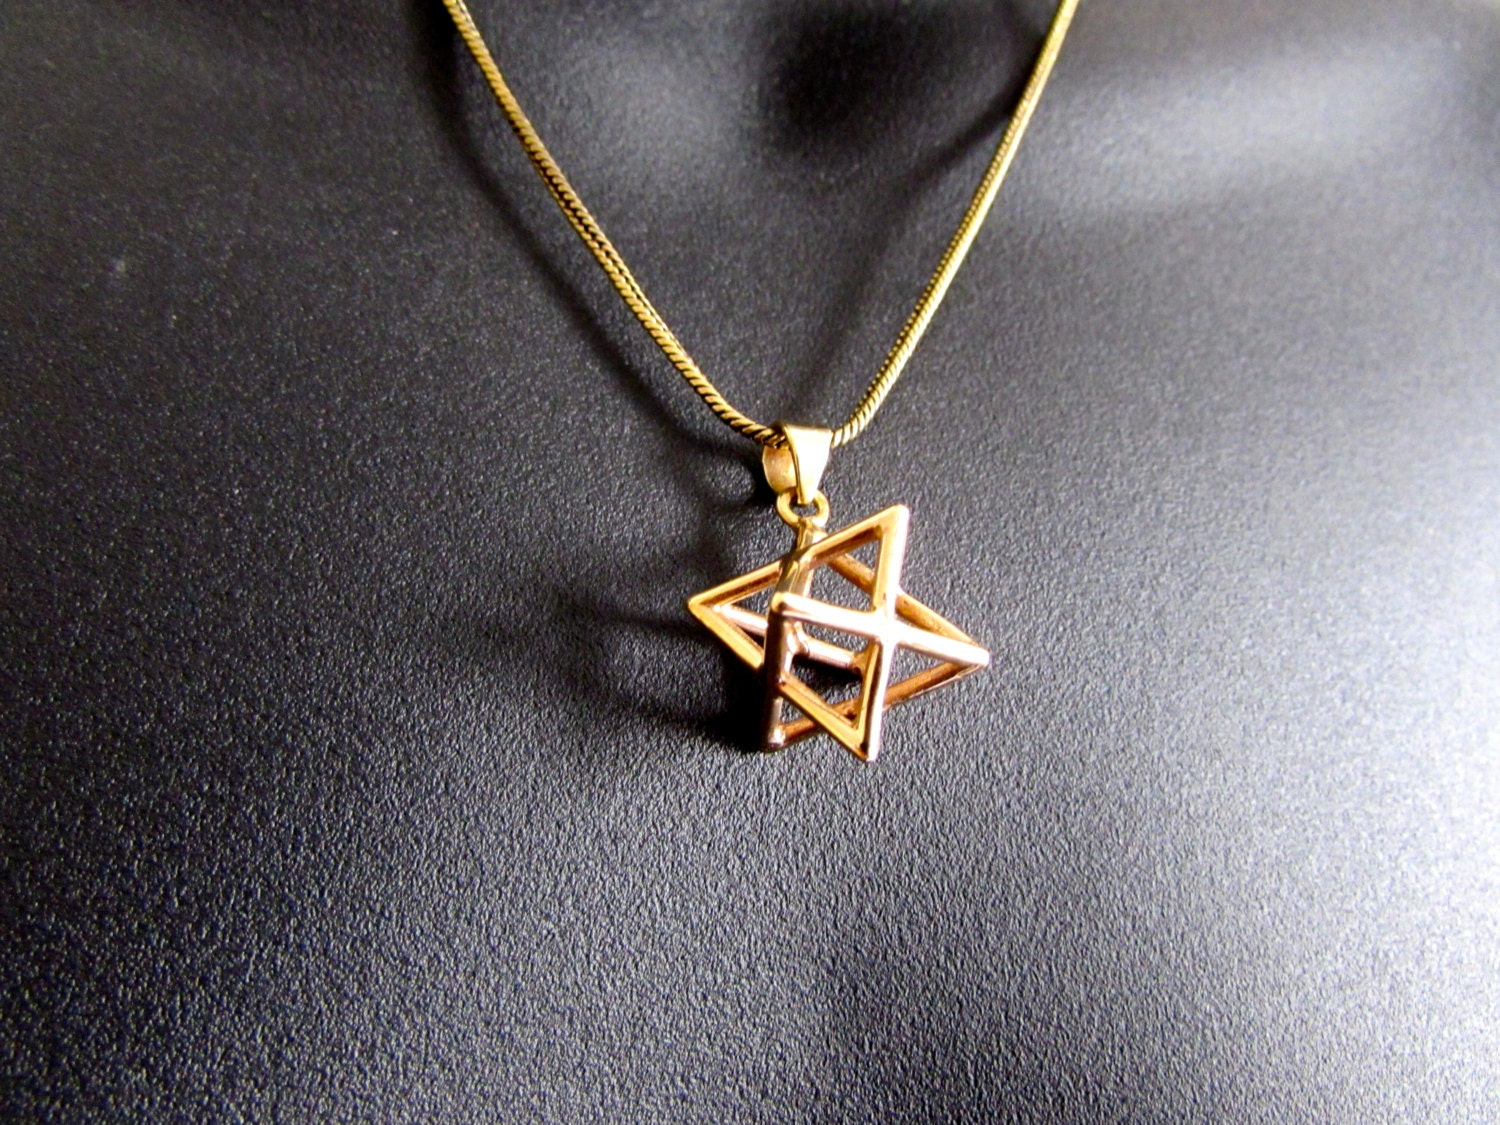 Merkaba necklace pendant sacred geometry kabbalah jewelry star zoom mozeypictures Gallery